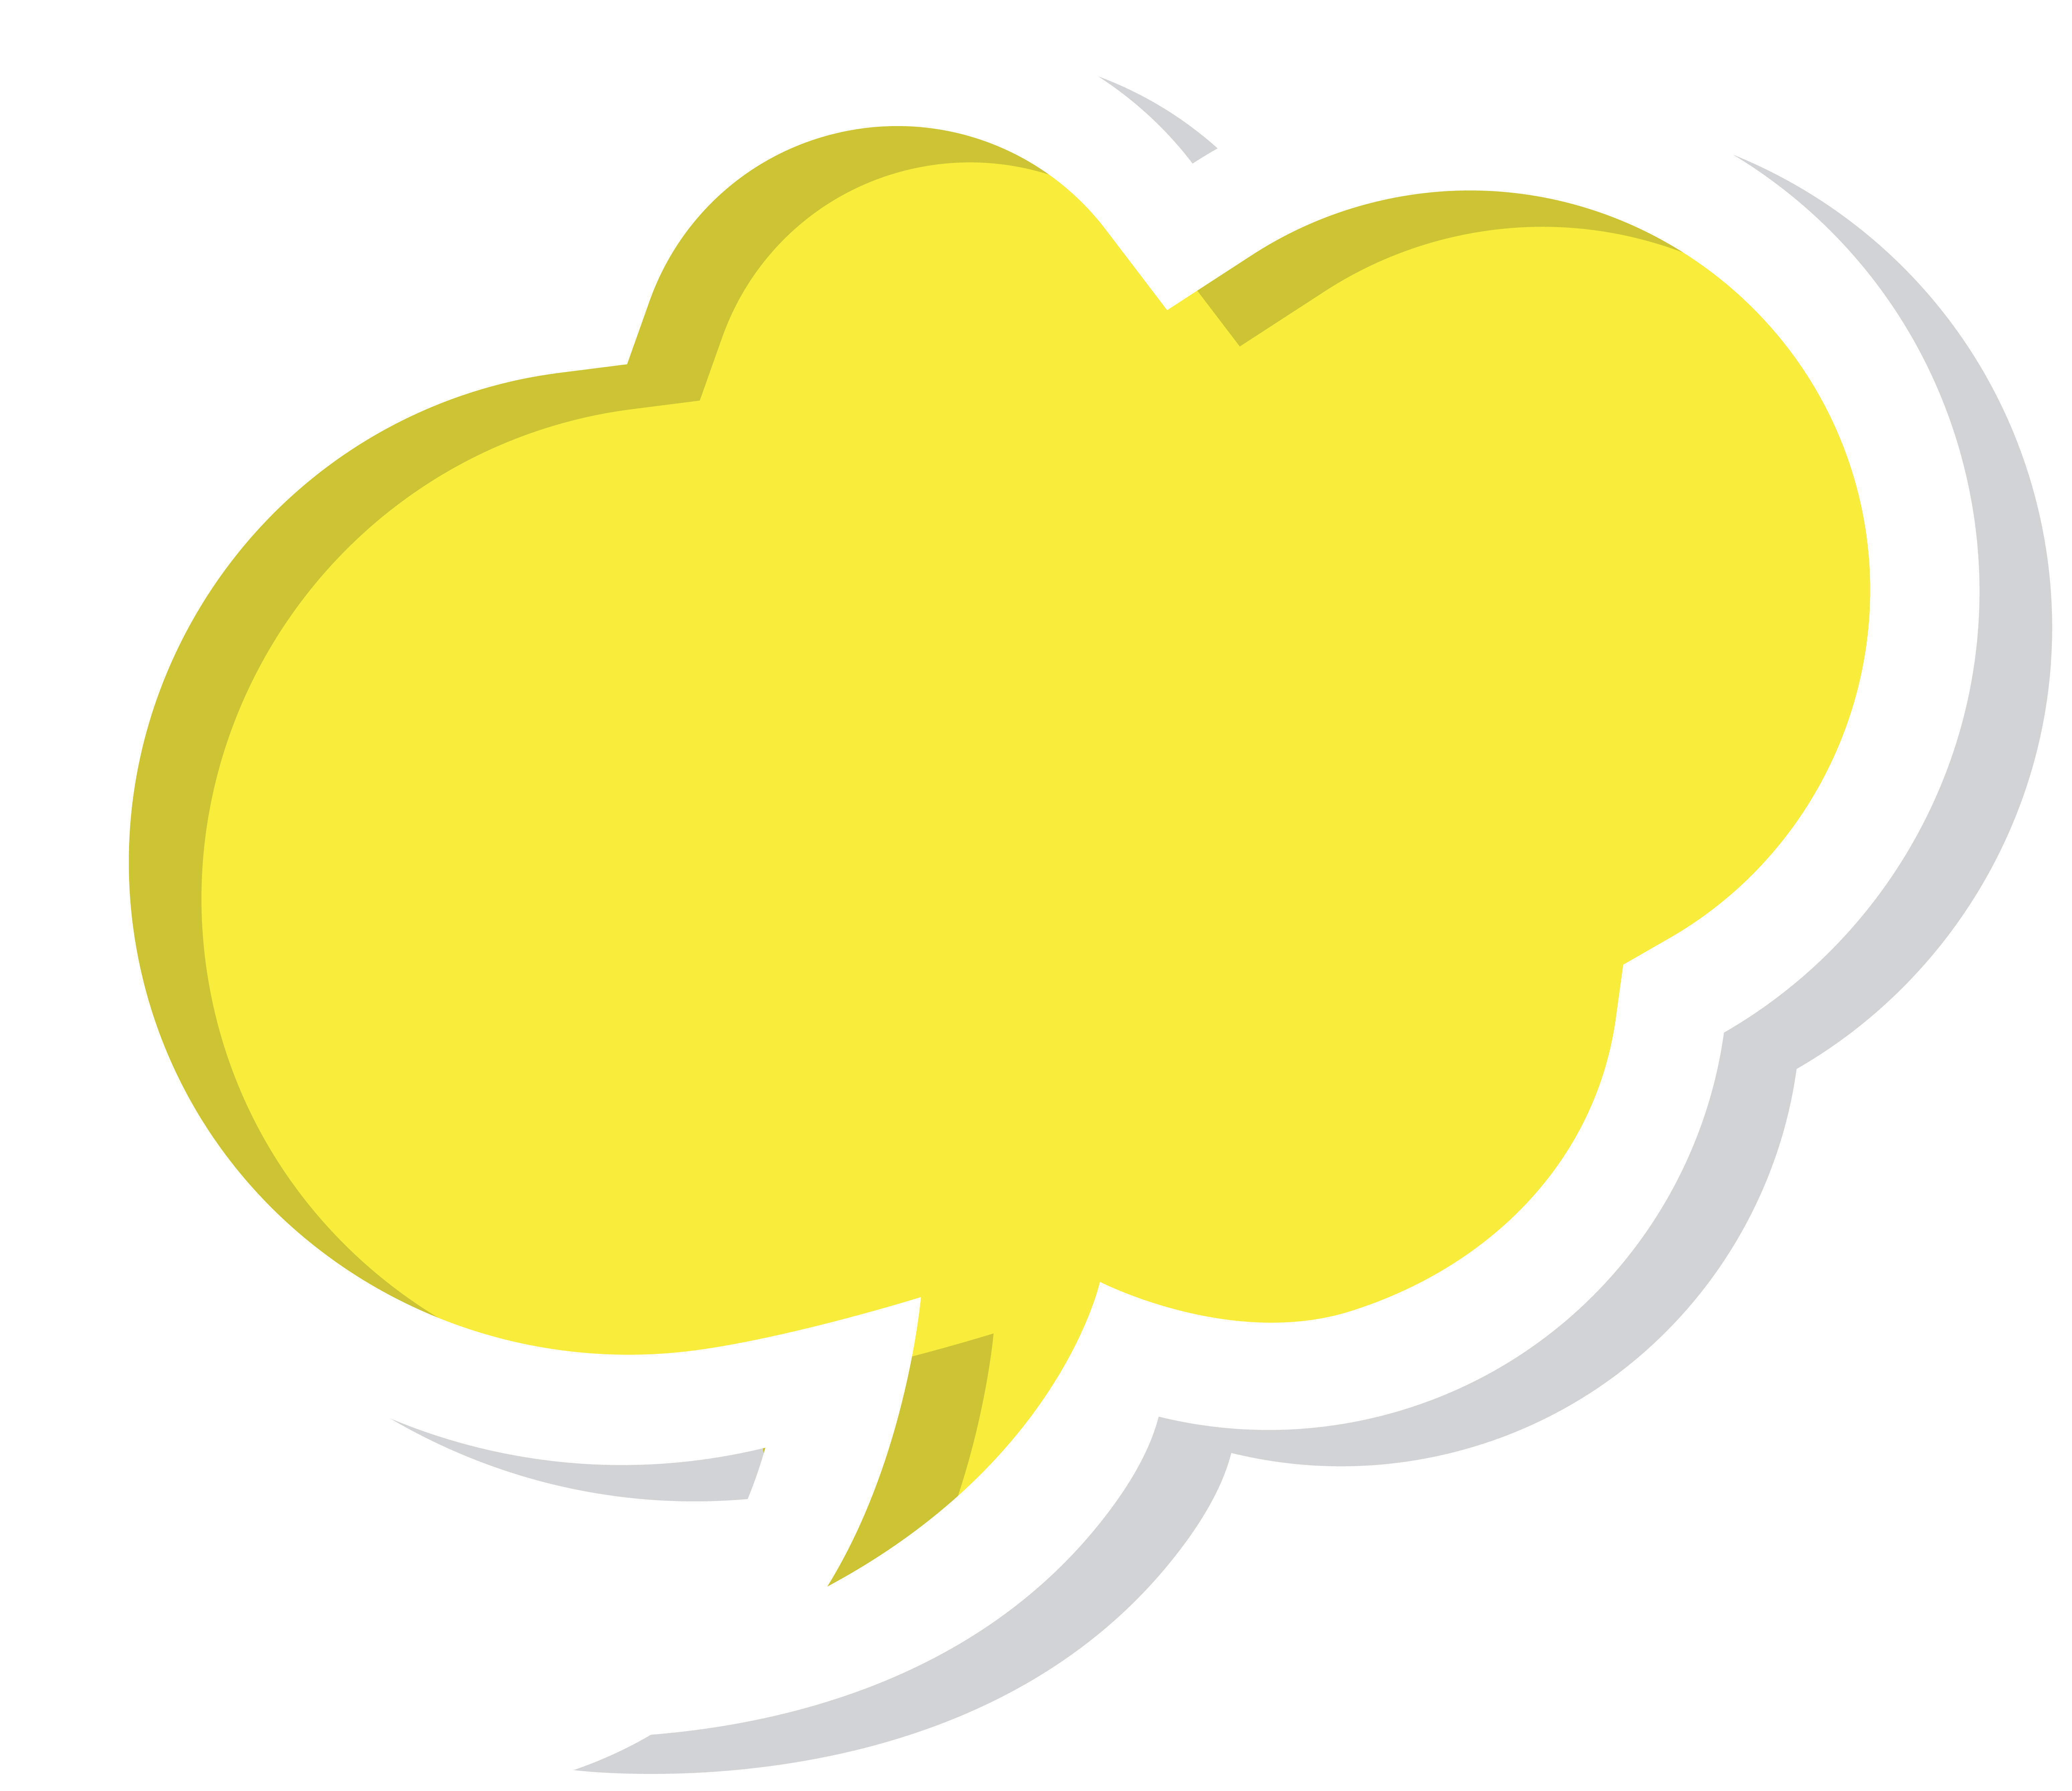 Red Cloud clipart Yellow Cloud Clipart #9